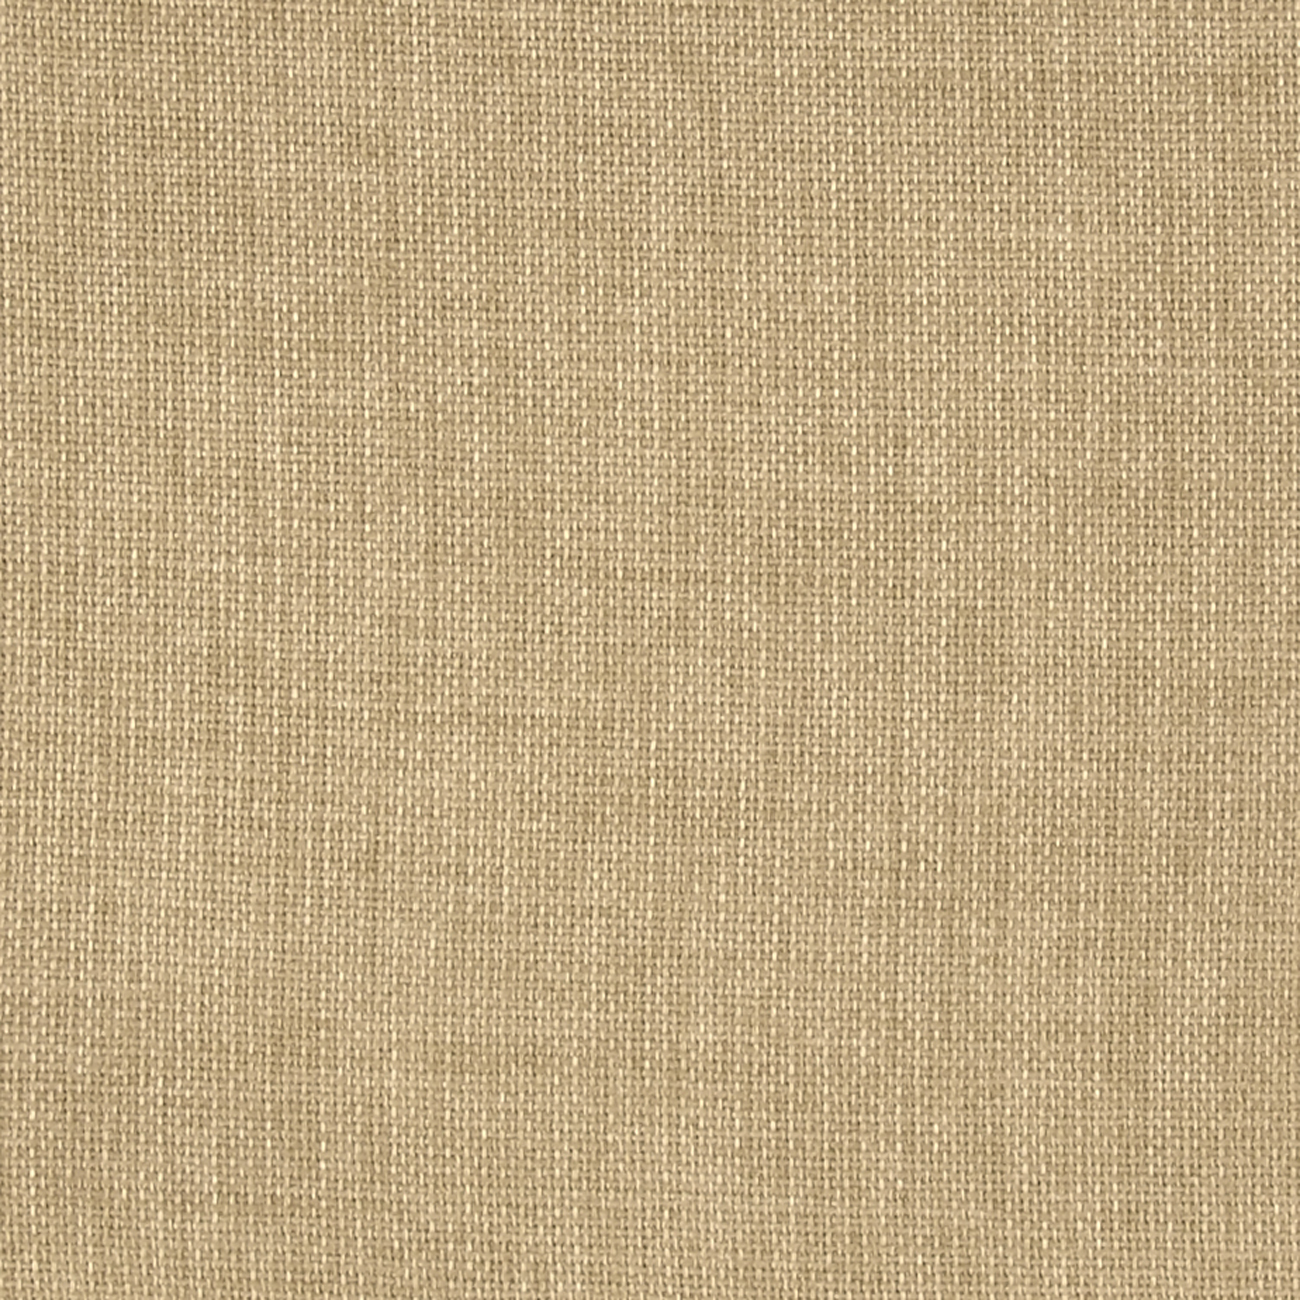 Richloom Solarium Outdoor Rave Driftwood Fabric By The Yard by Richloom in USA